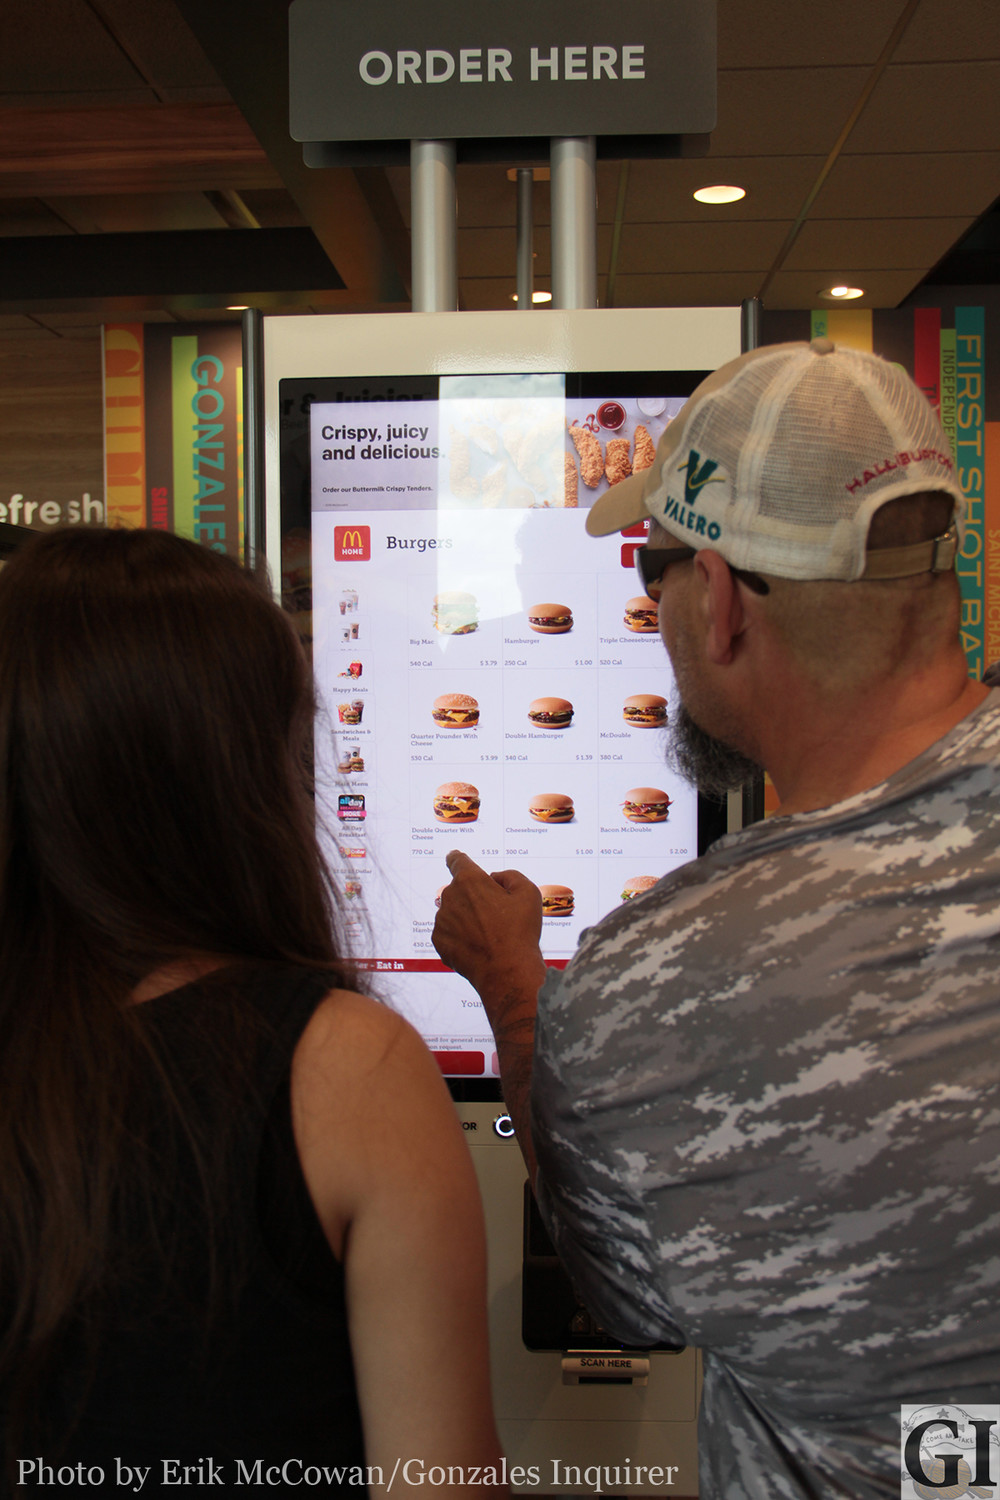 The new interactive menu screen at McDonald's allows customers to select and customize their orders in-store. If you download the restaurant's official app, you can place your order from home.